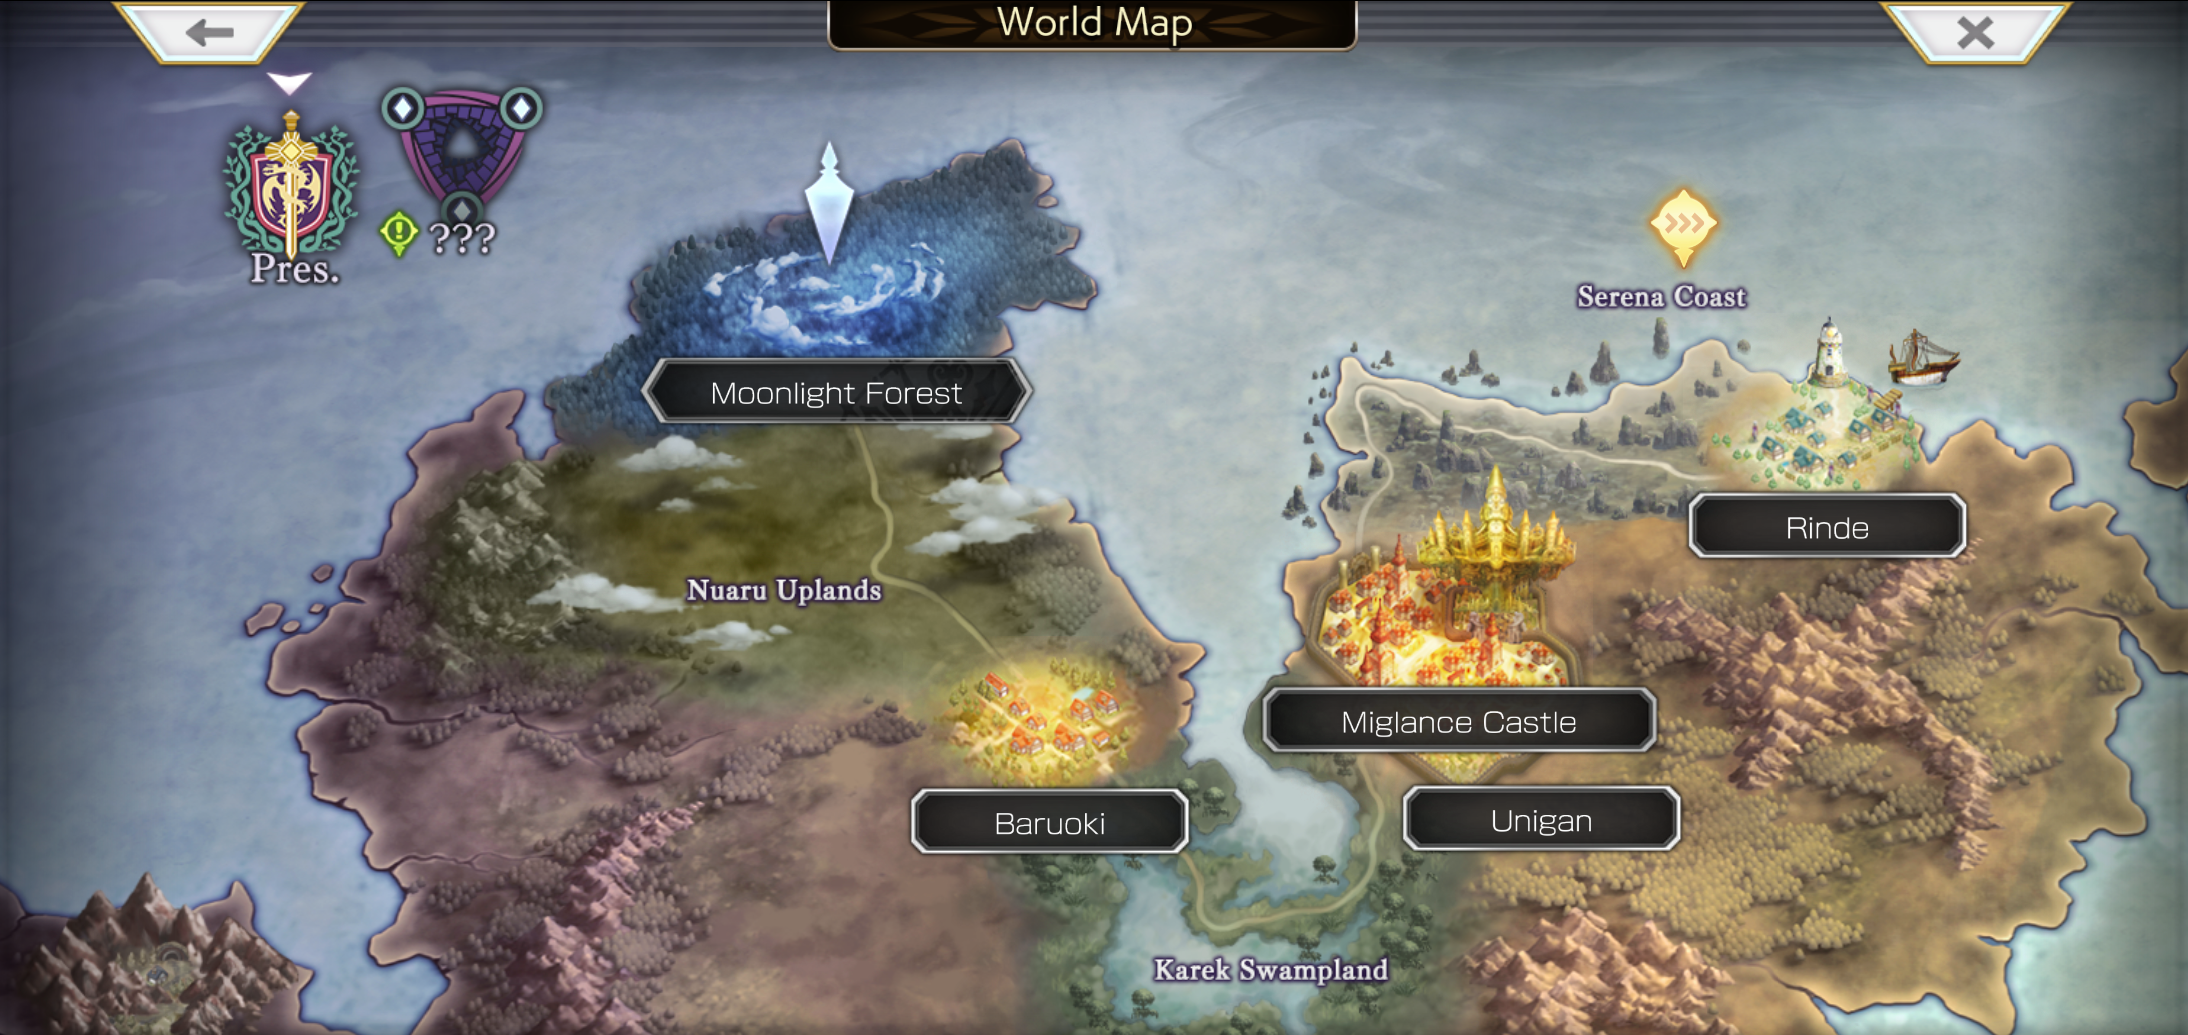 The world map for one of the eras within the game.